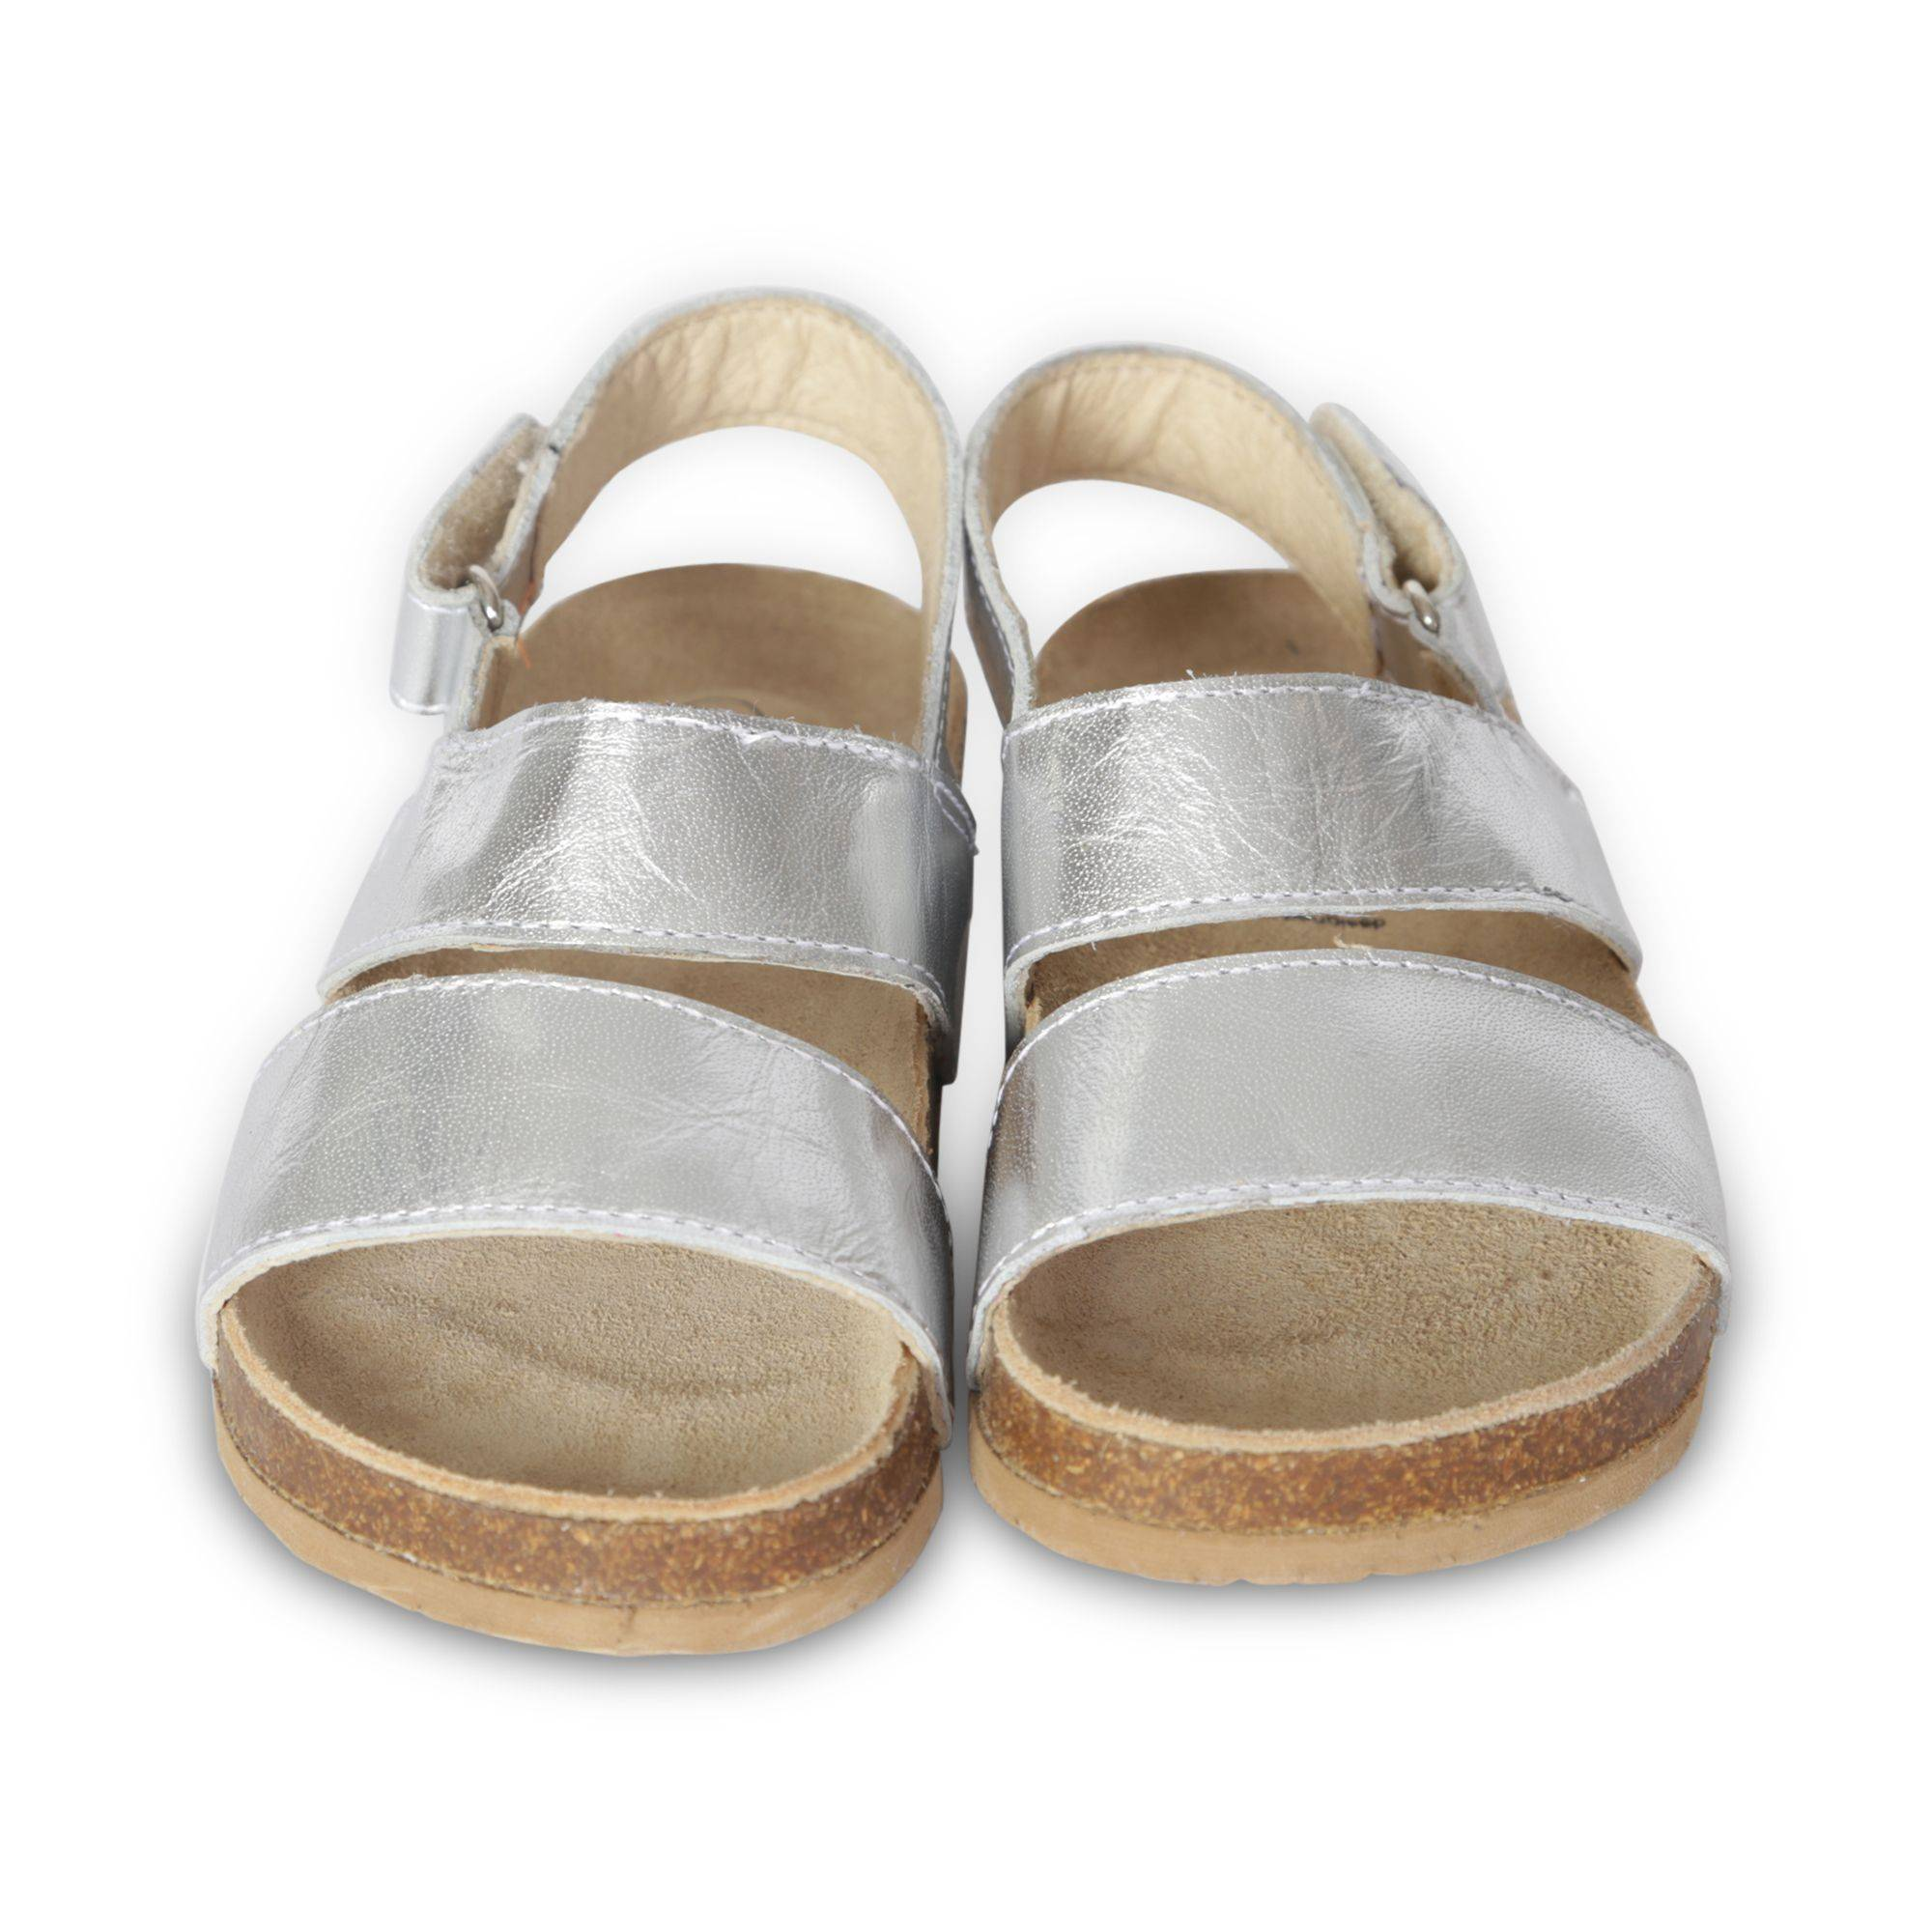 Old Soles Girls Sandal (12 jnr)